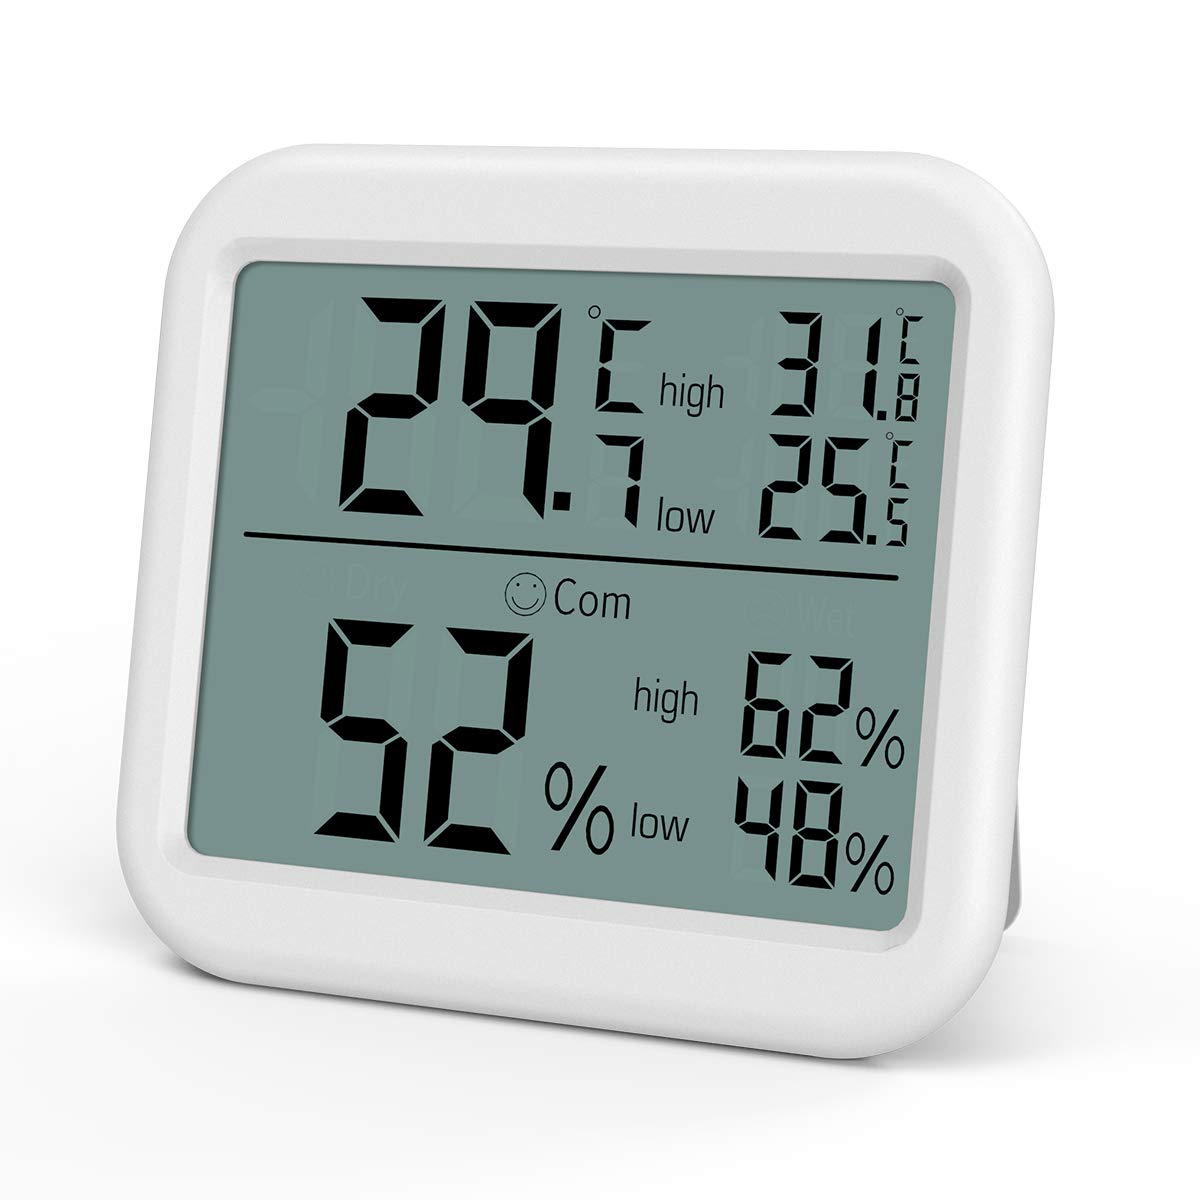 Oria Digital Hygrometer Thermometer, Indoor Temperature Meter, Humidity Monitor with Large LCD Screen, MIN MAX Record, Comfort Indicators, ℃/℉Switch, Magnet/Tabletop/Hanging for Home, Office, Nursery ℃ /℉ Switch